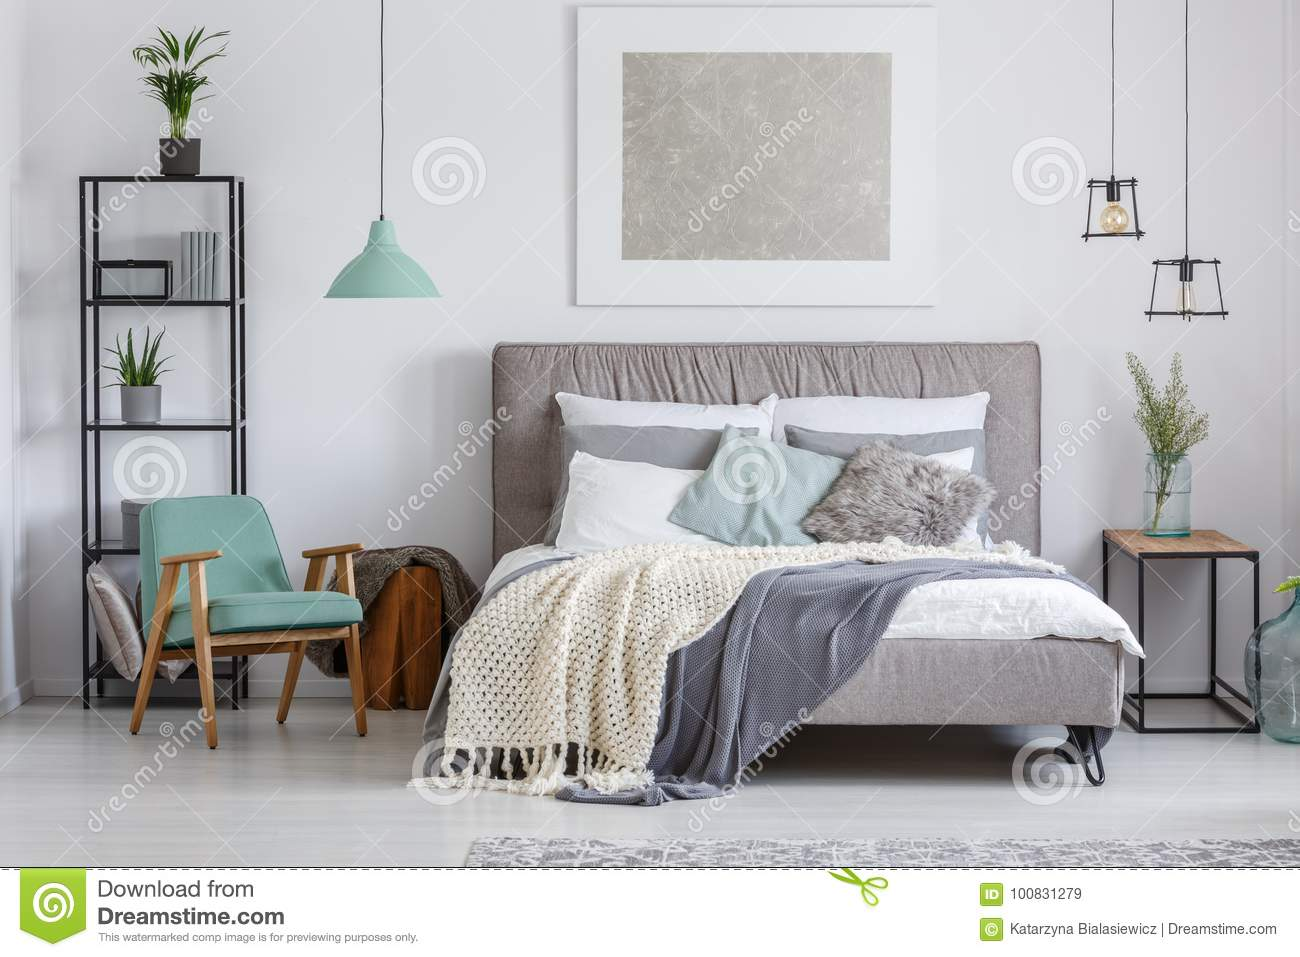 Adorable bedroom with mint chair